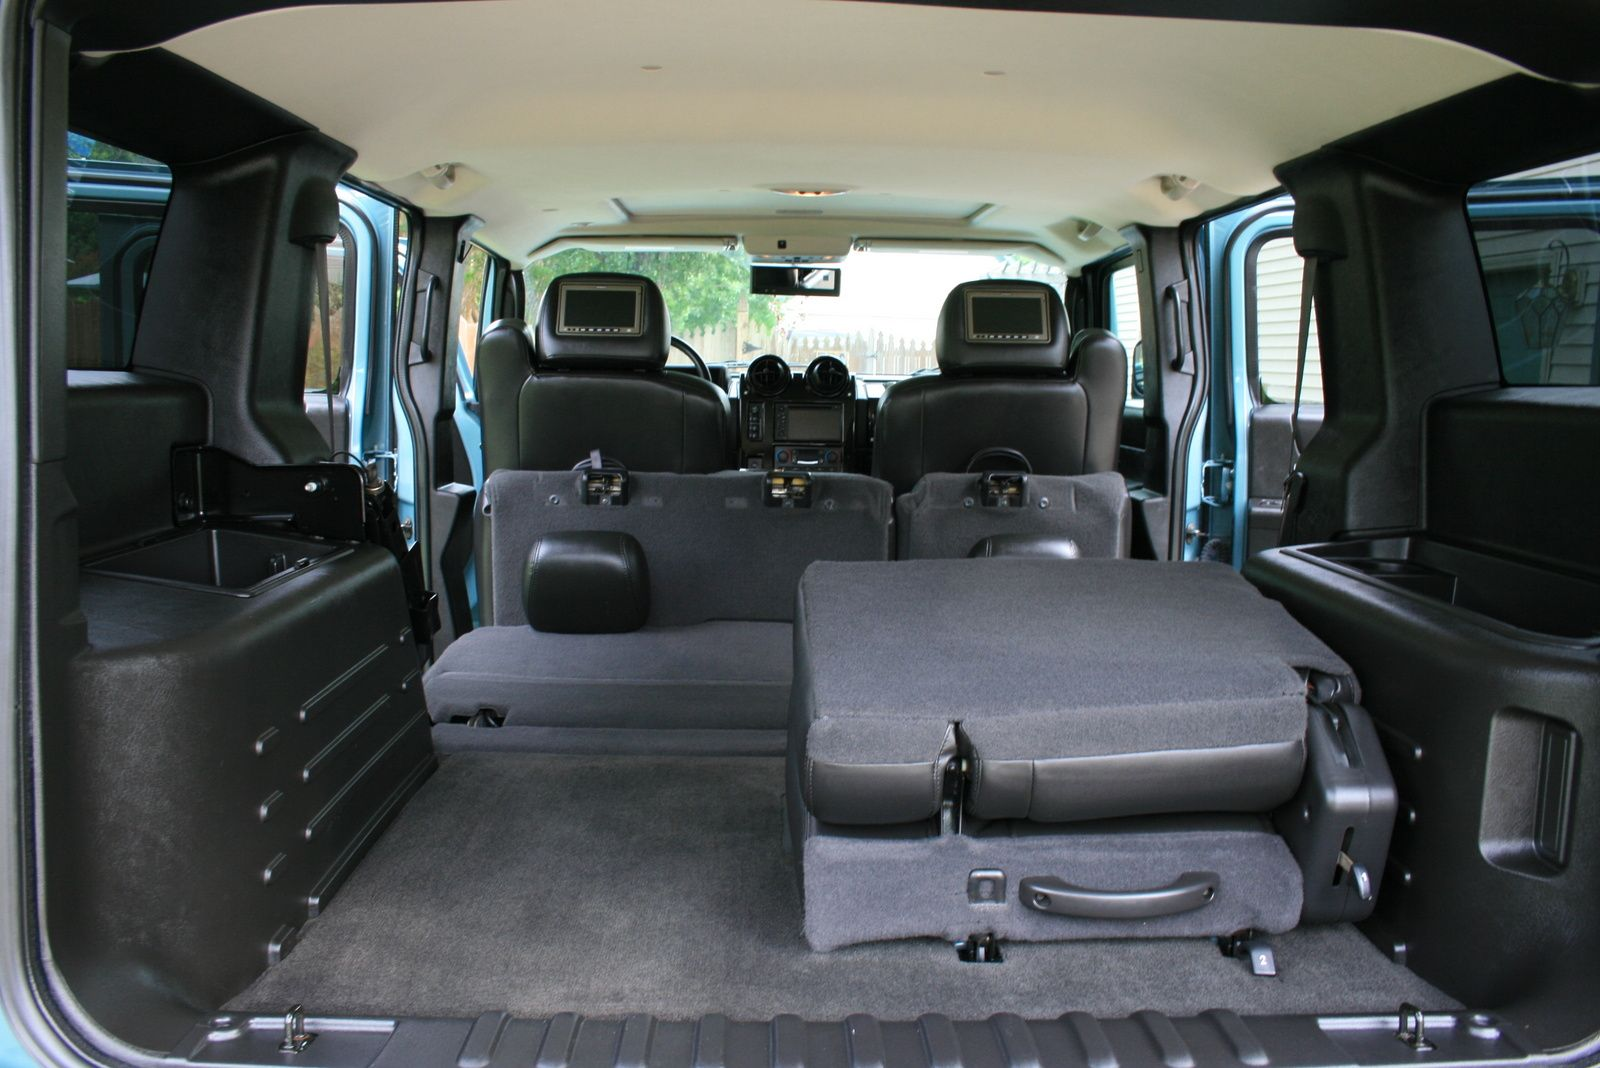 Hummer H2 Interior | Wheels - US - Hummer | Pinterest | Hummer ...